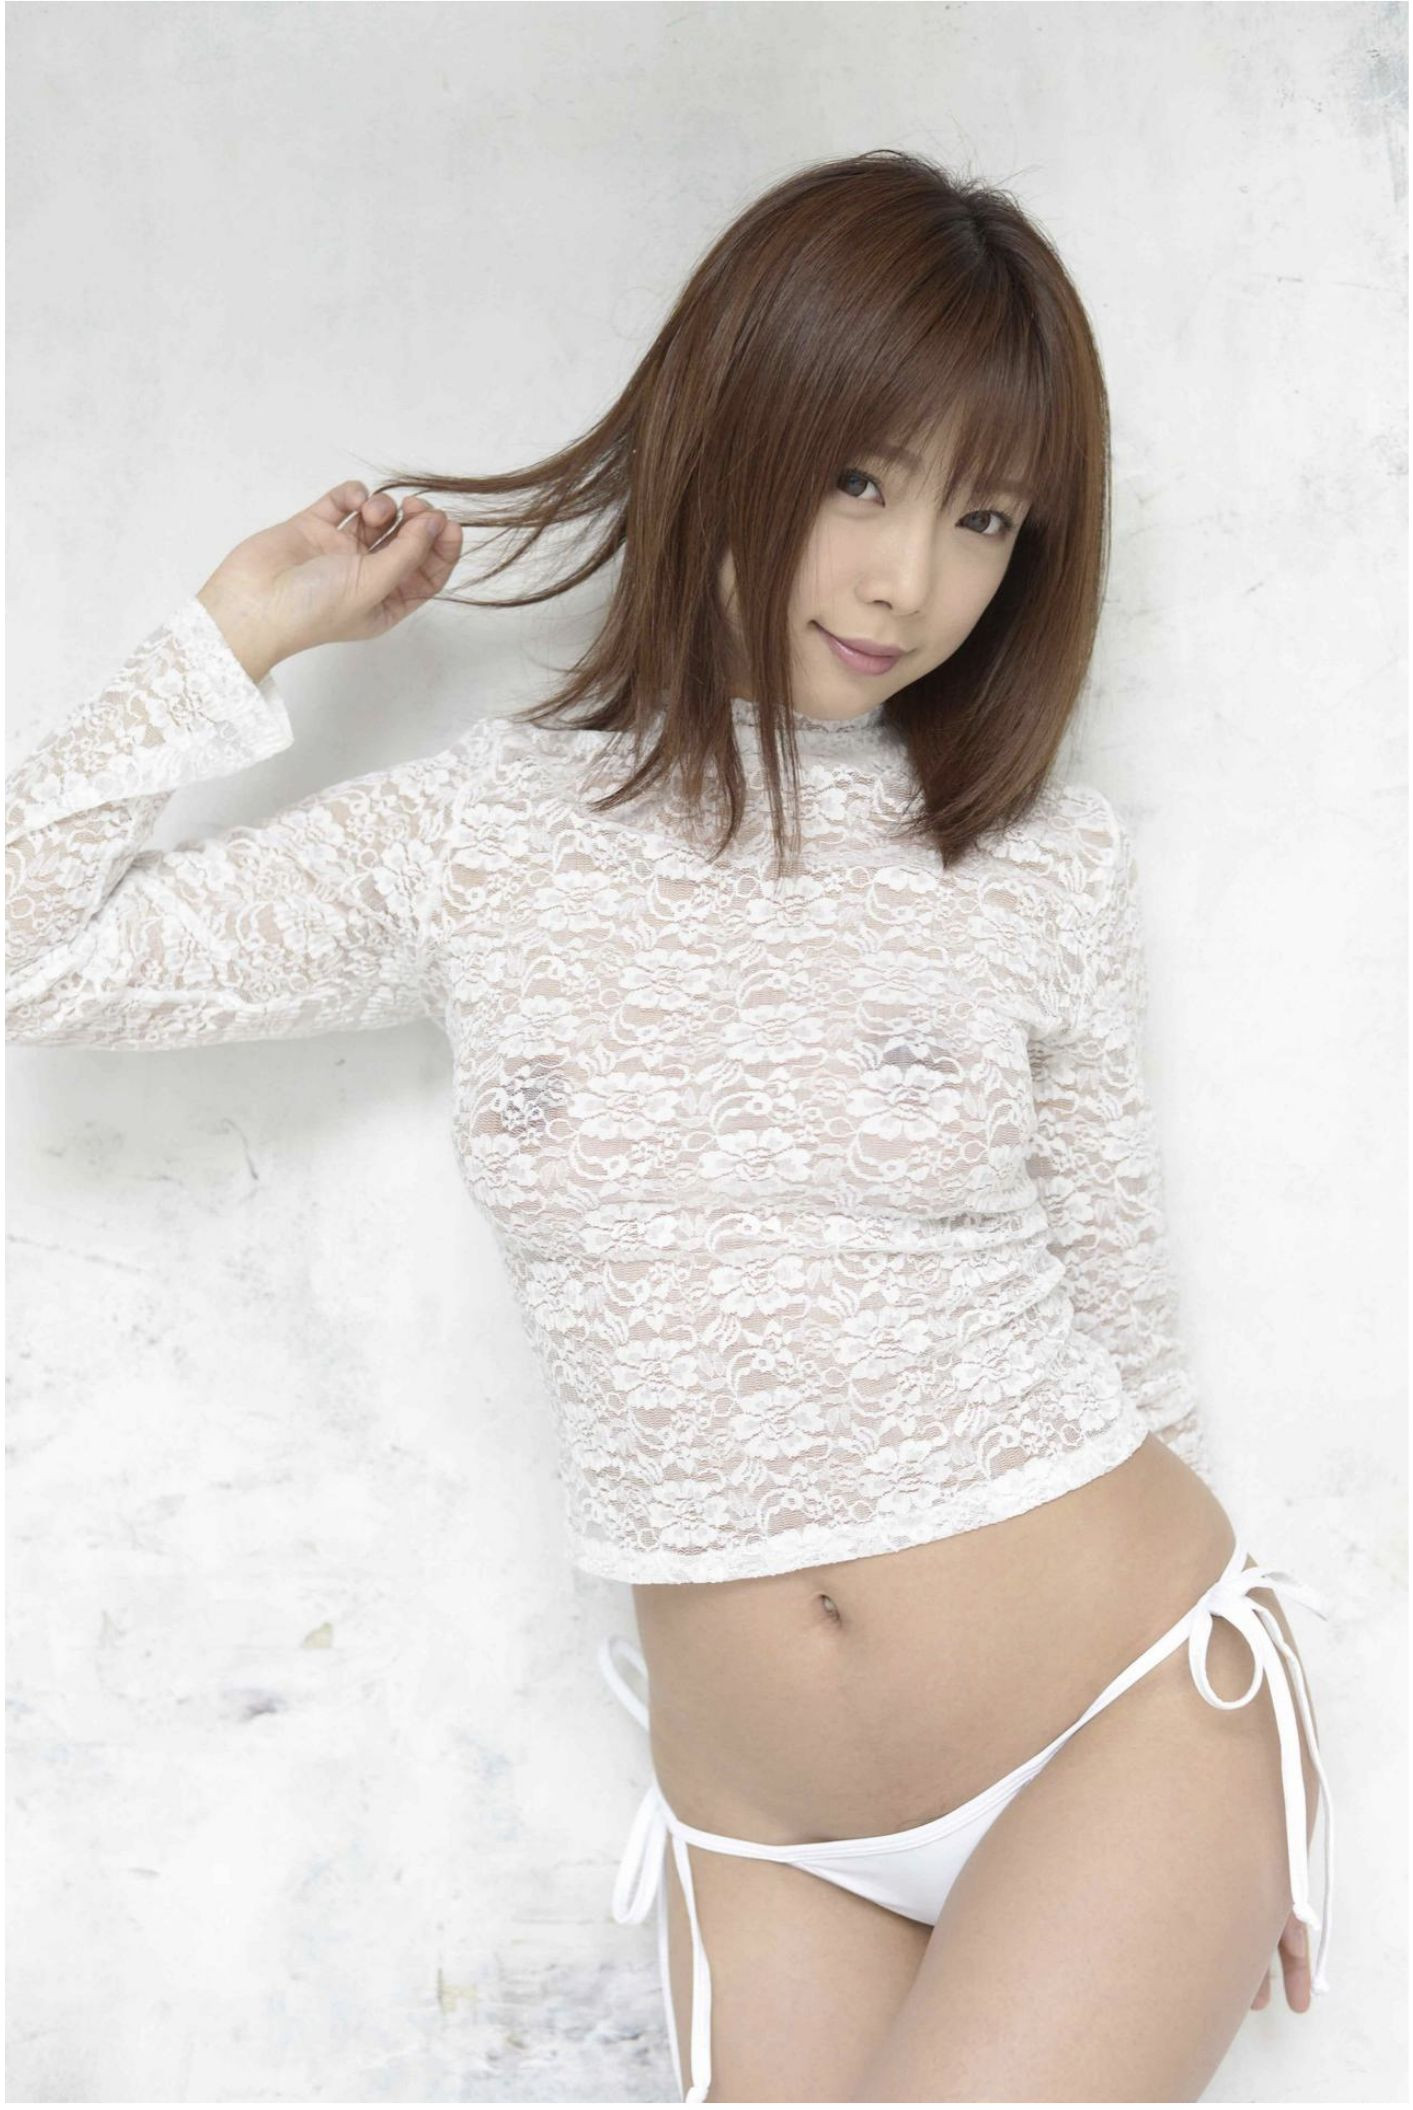 SOFT ON DEMAND GRAVURE COLLECTION 紗倉まな04 photo 028